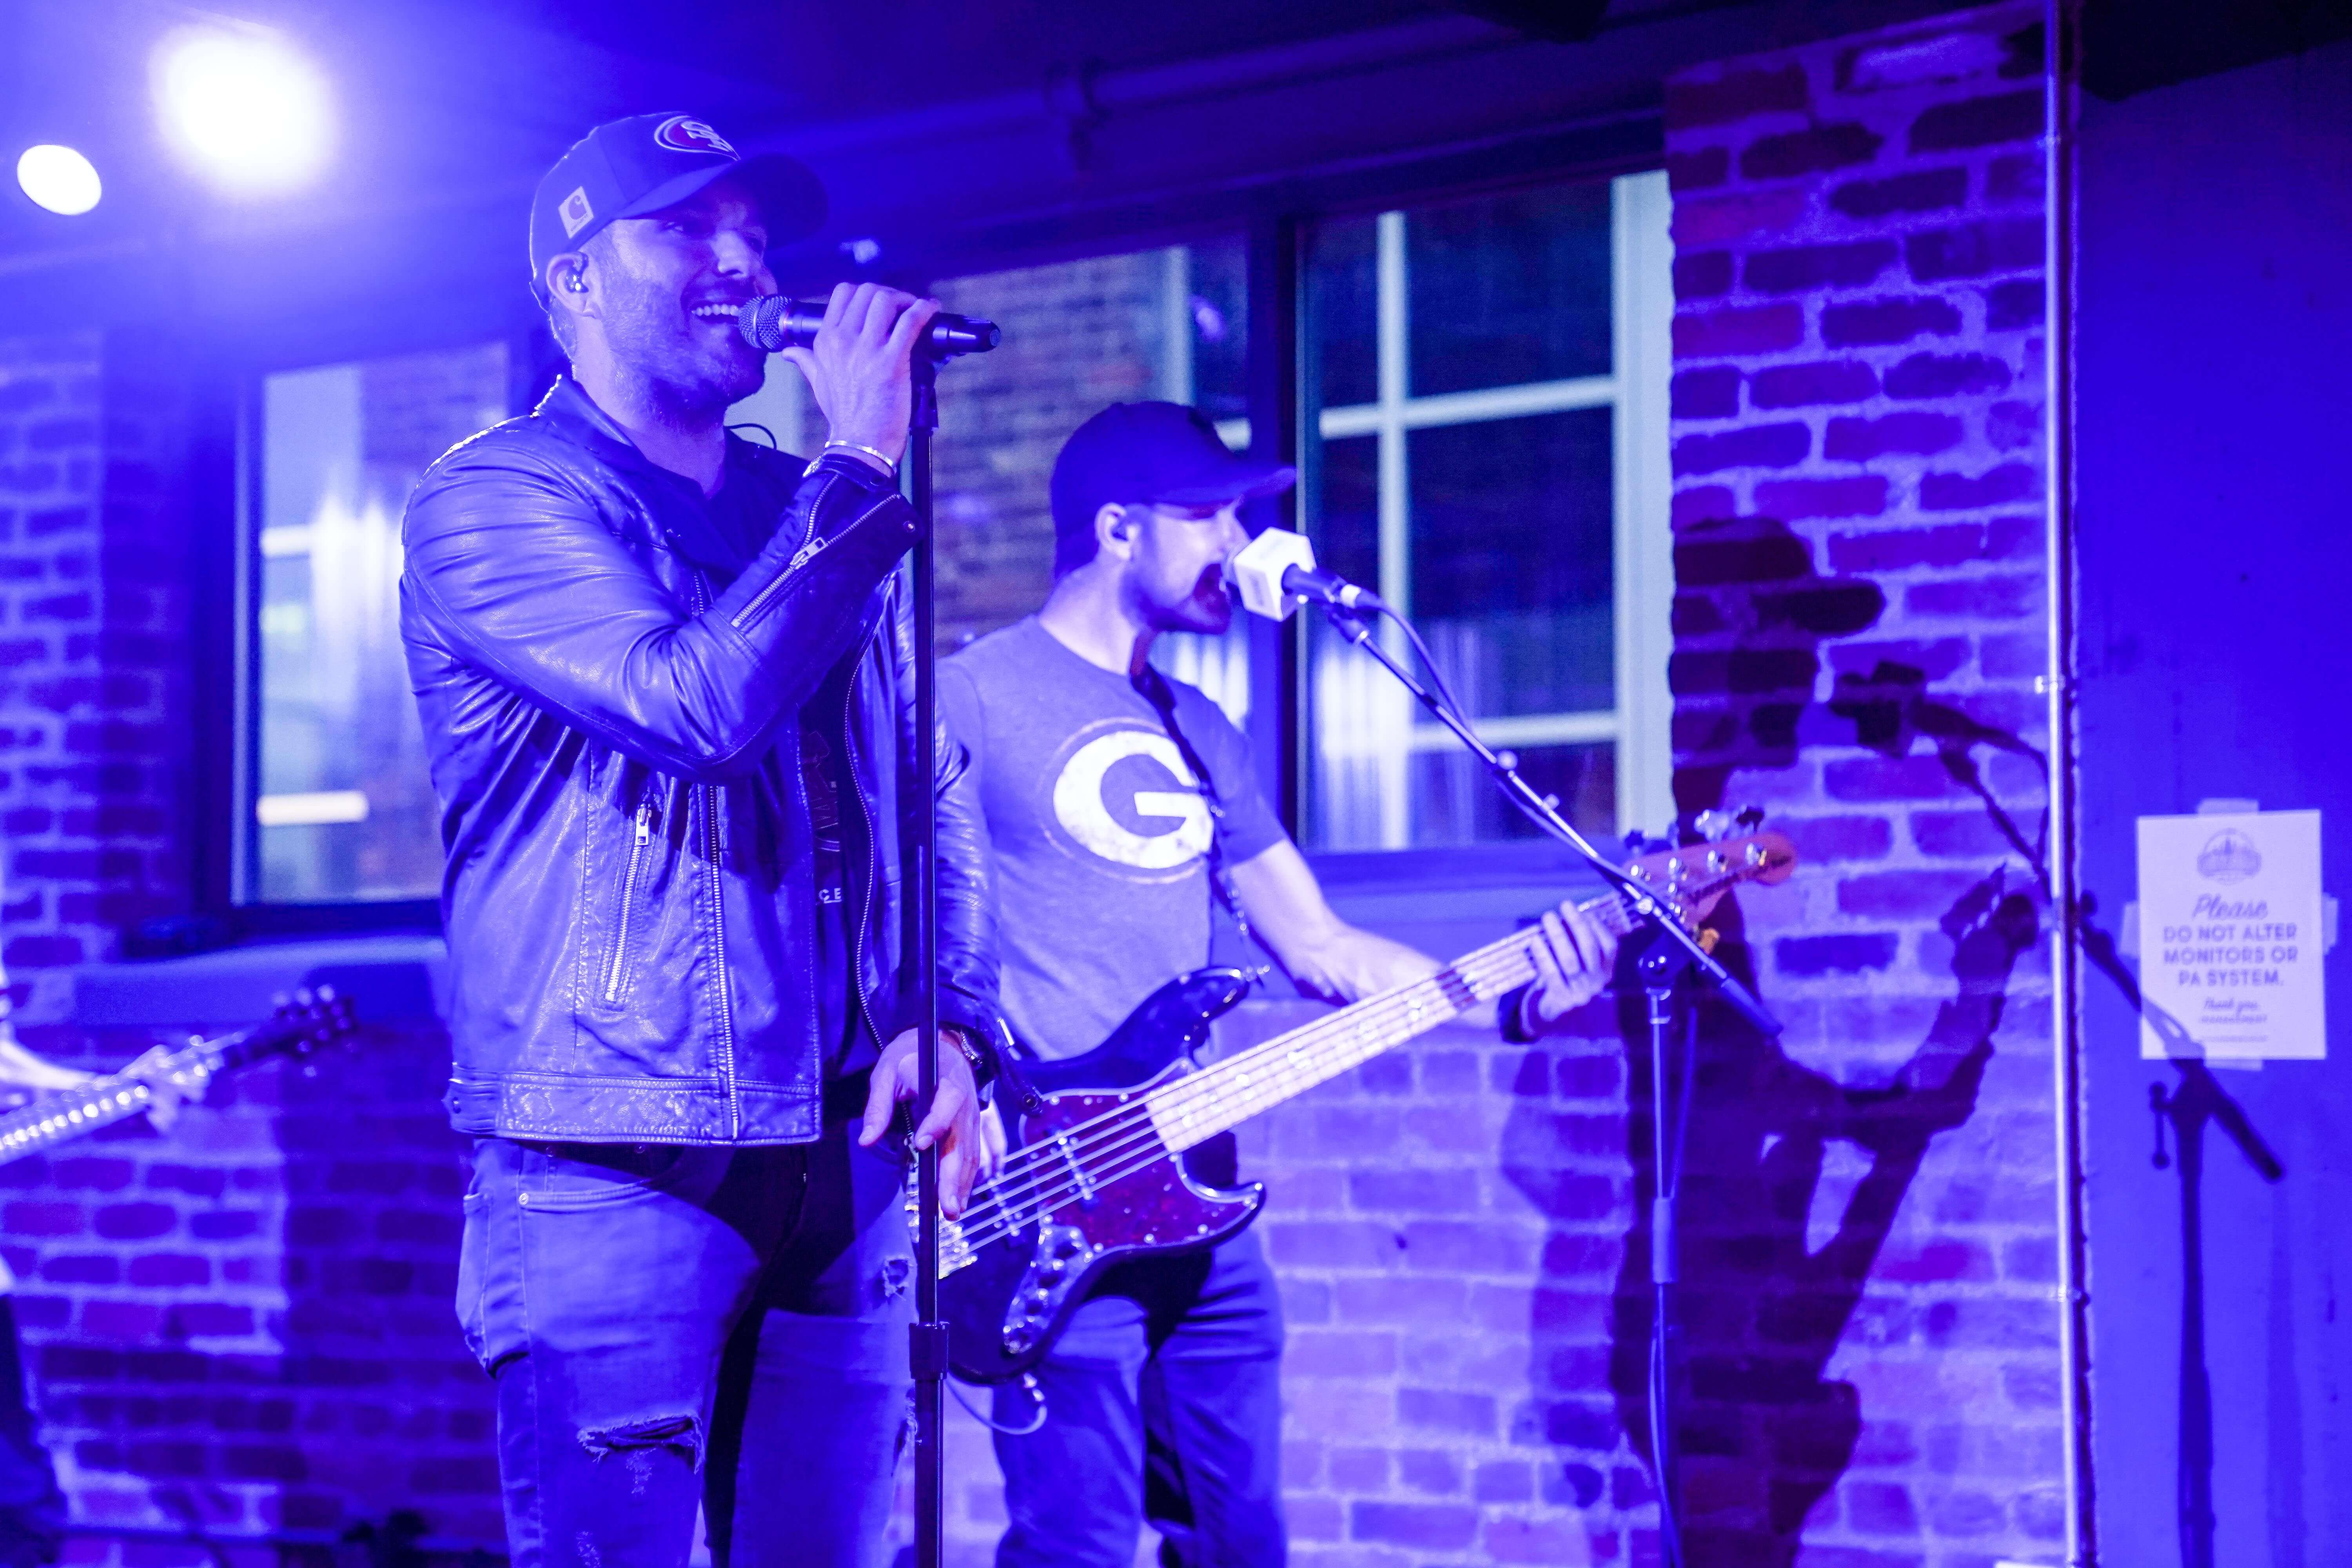 """The festivities concluded with a musical performance by country singer Tyler Rich (Big Machine Label Group). The CMT 2018 Listen Up Artist is best known for his single """"The Difference."""""""